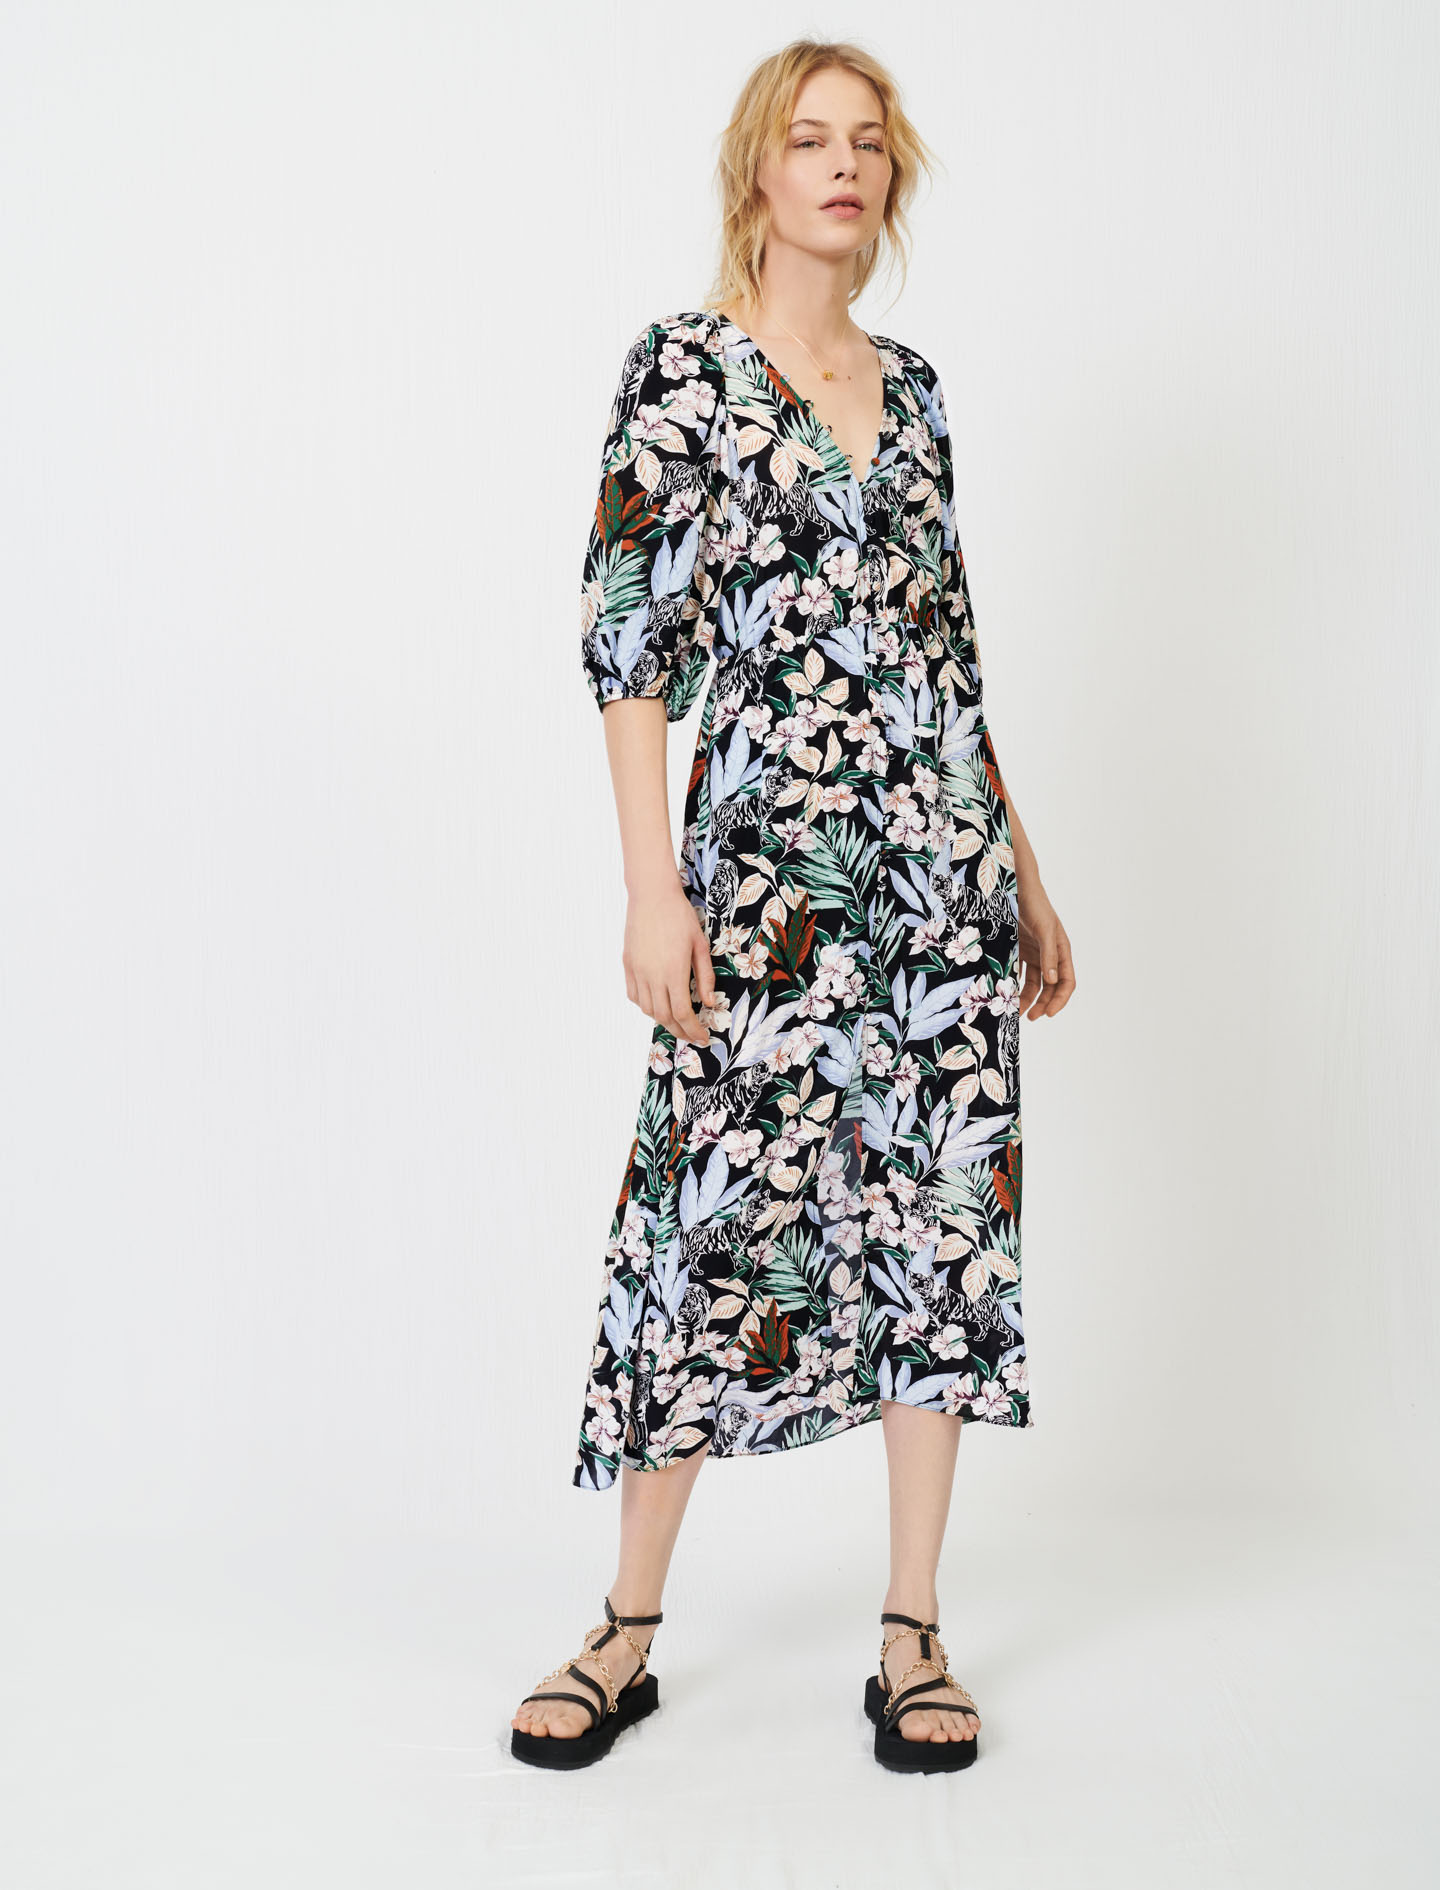 Maje Printed viscose dress with smocking